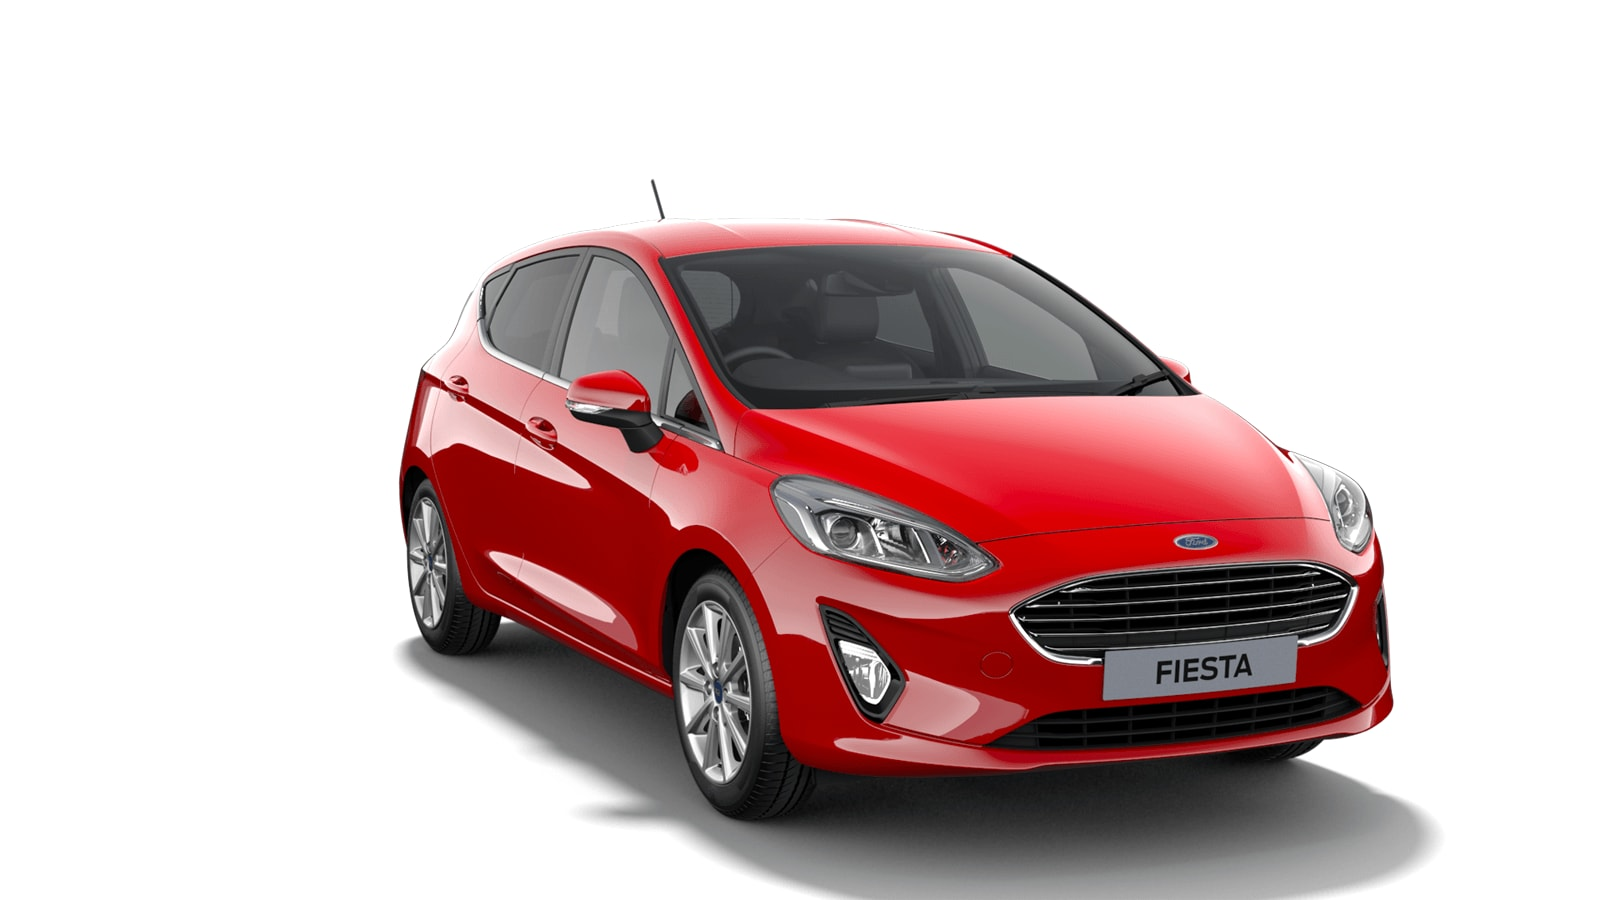 Ford Fiesta at Balmoral Garage